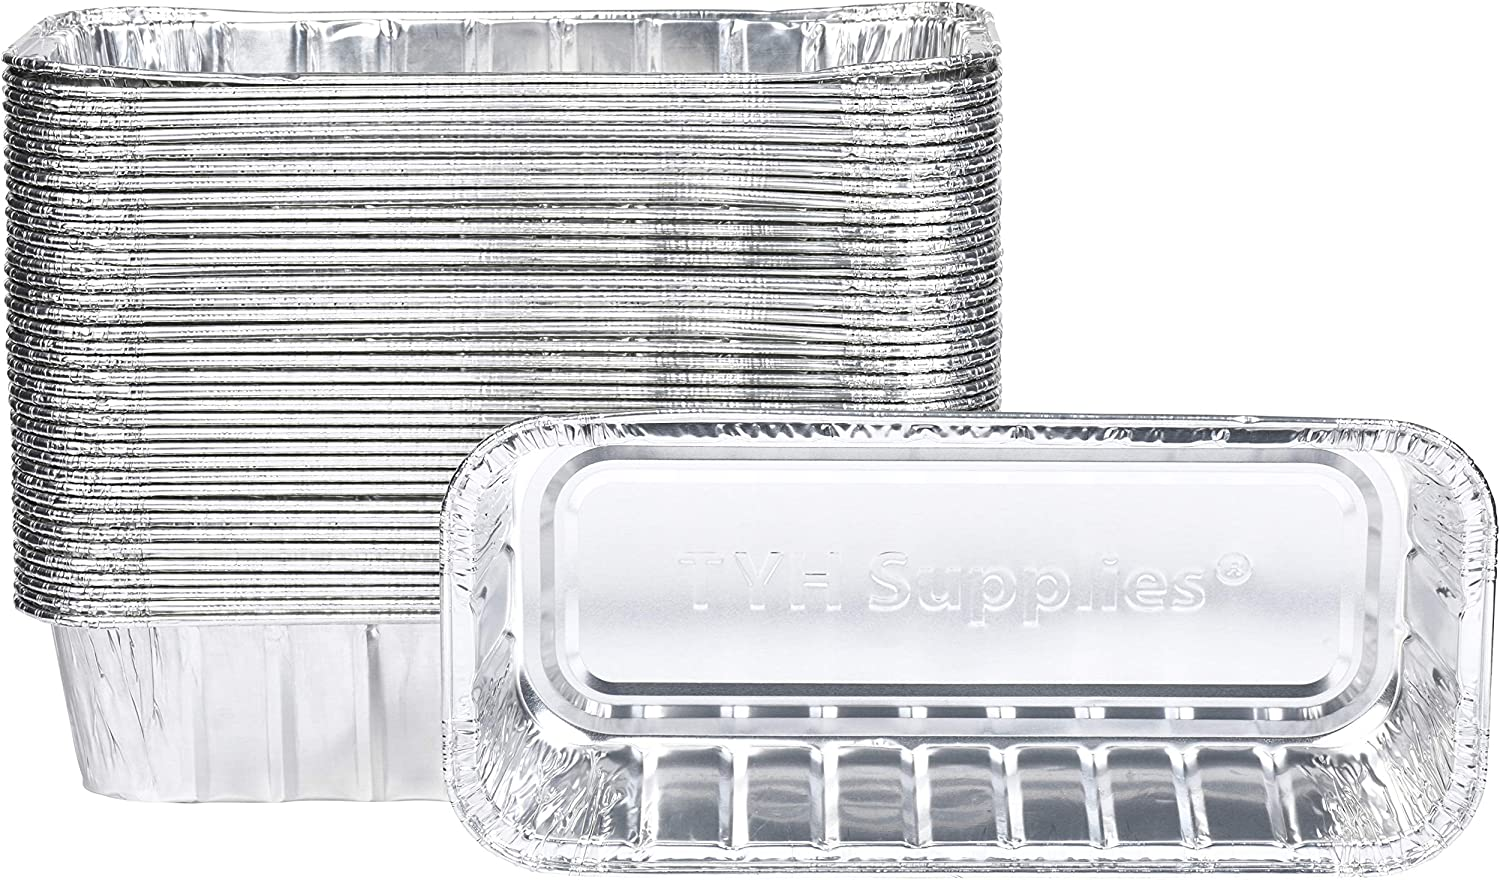 TYH Supplies 50-Pack Aluminum Foil BBQ Grease Drip Pans Compatible with Weber Genesis II LX 400 & 600, Summit 400 & 600 series, Summit Gold & Platinum 6-burner Gas Grill, SmokeFire EX4 EX6 9.75 x 3.75